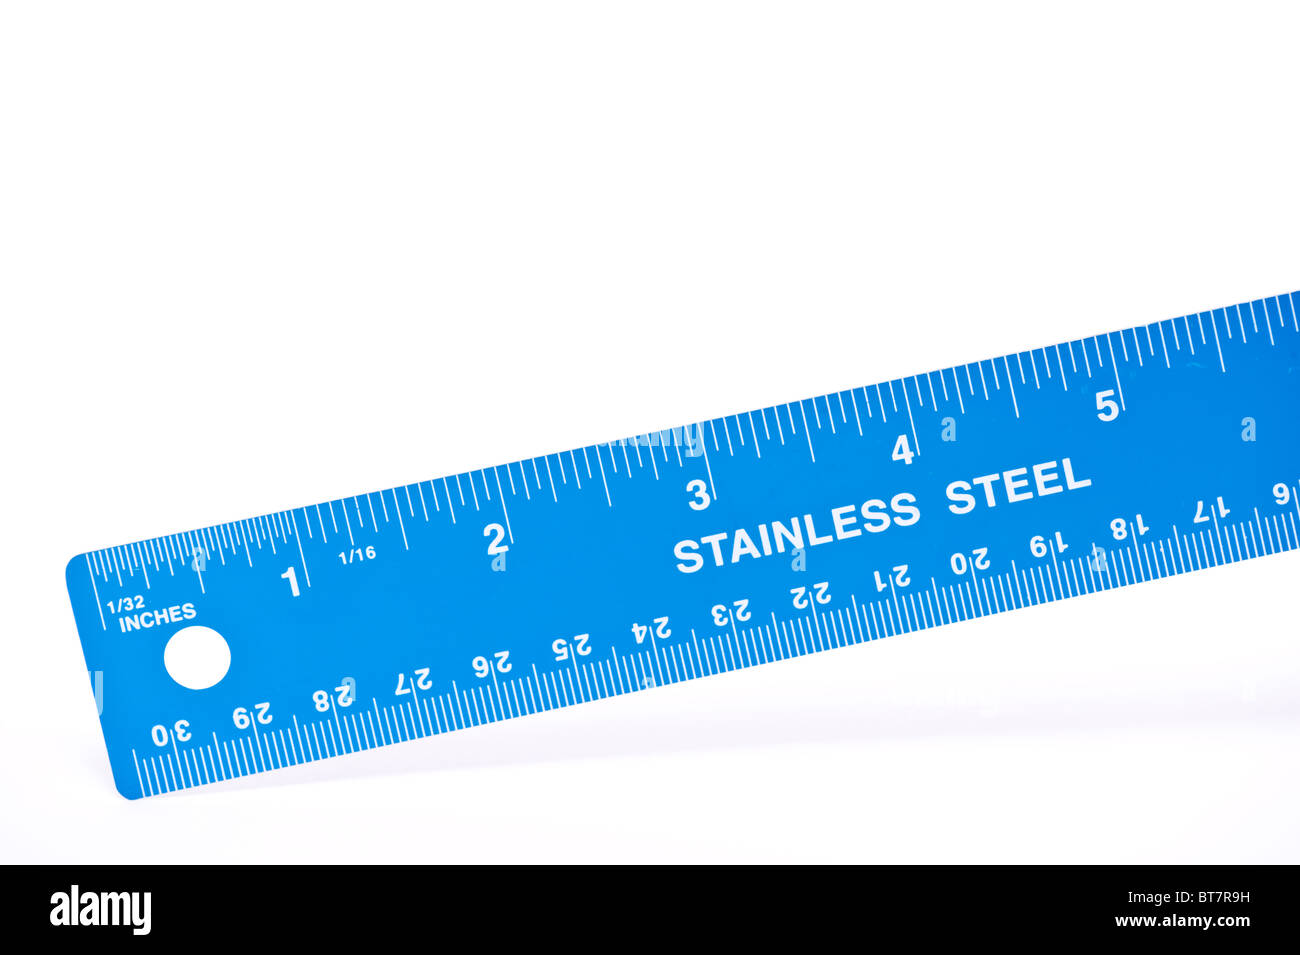 A close up photo of a blue stainless steel ruler against a white background - Stock Image